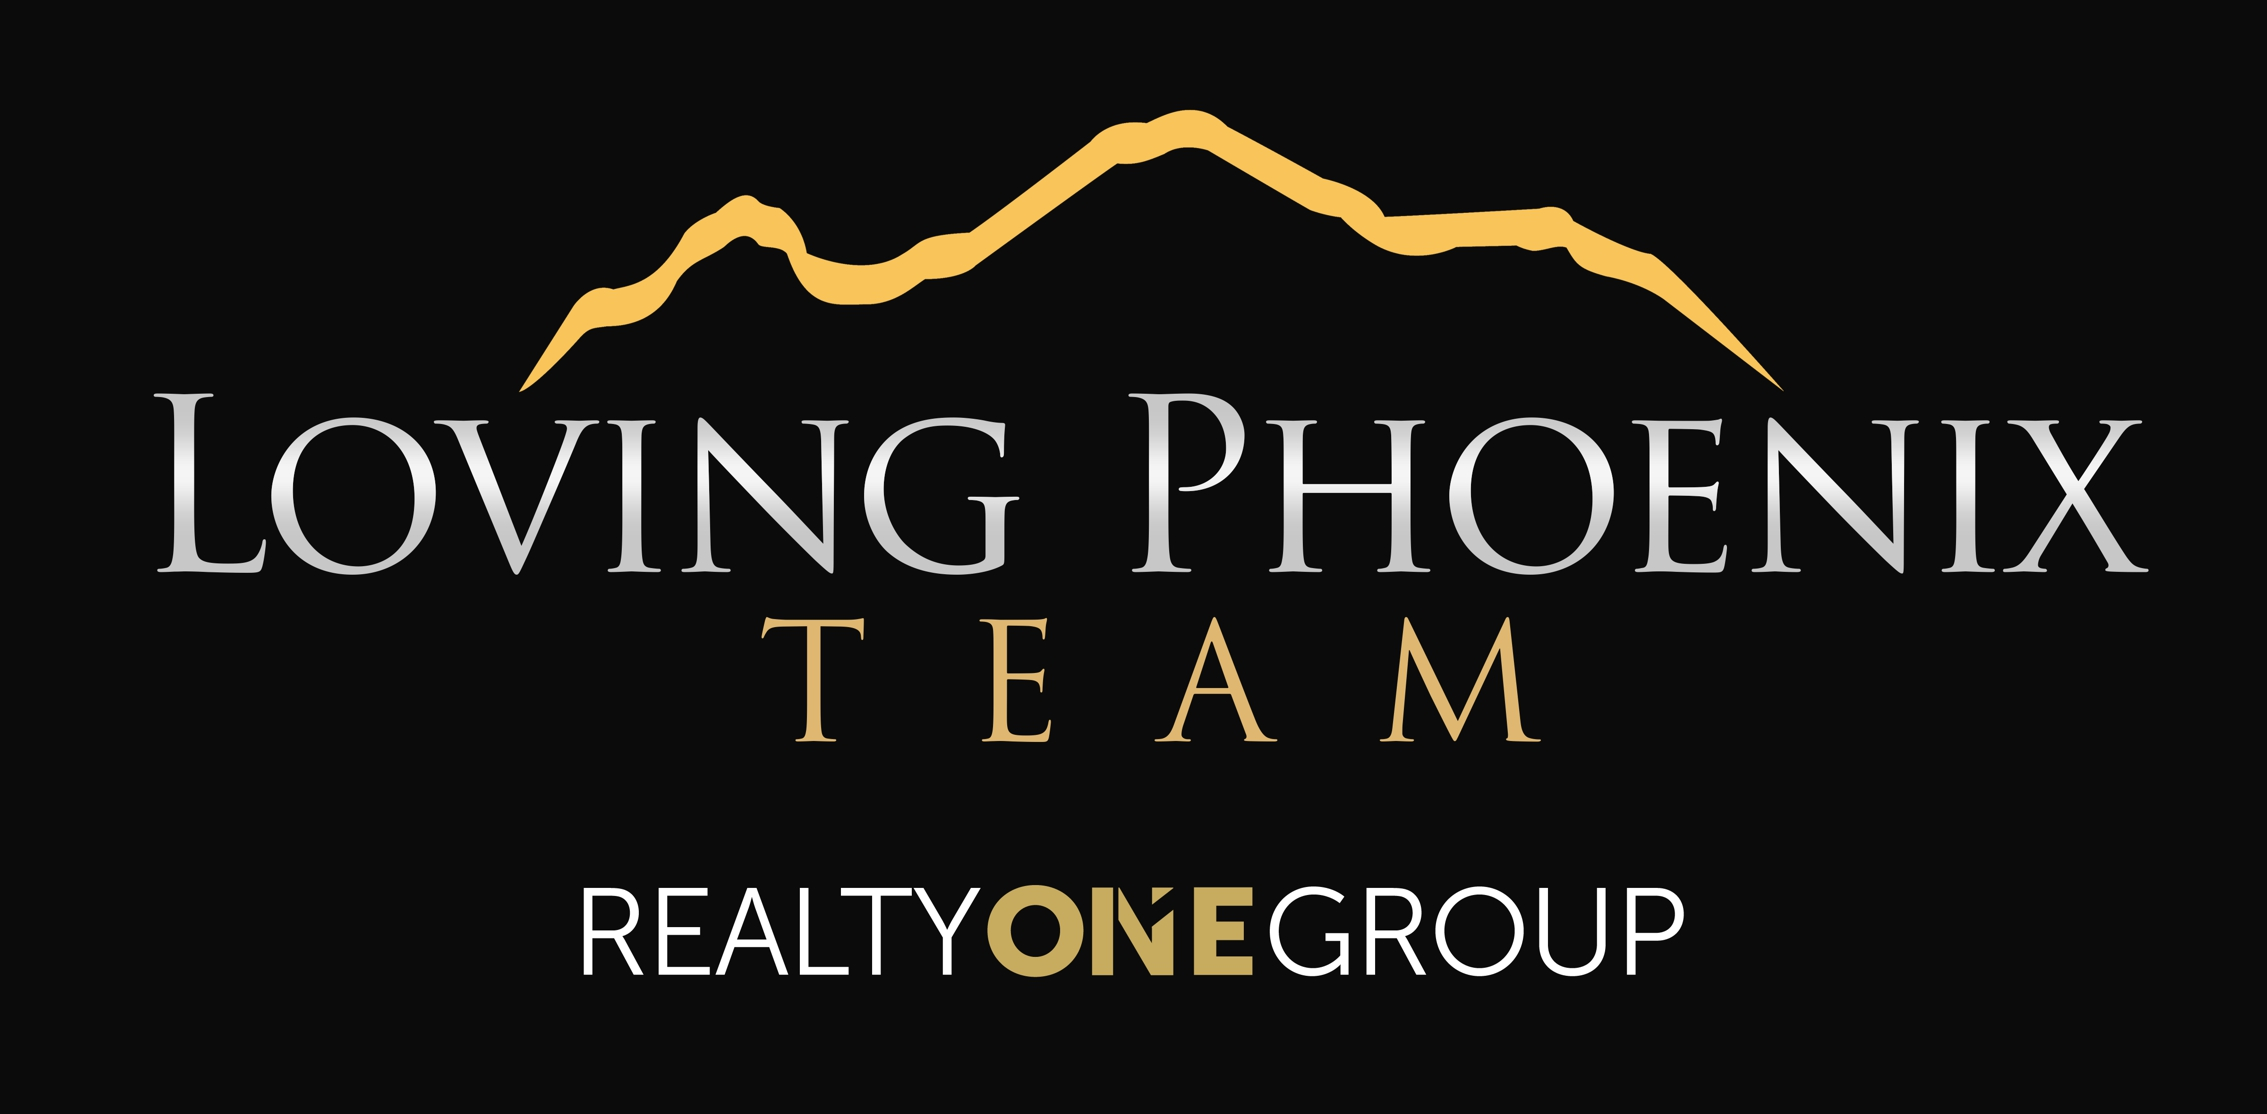 Loving Phoenix Team | Realty ONE Group logo